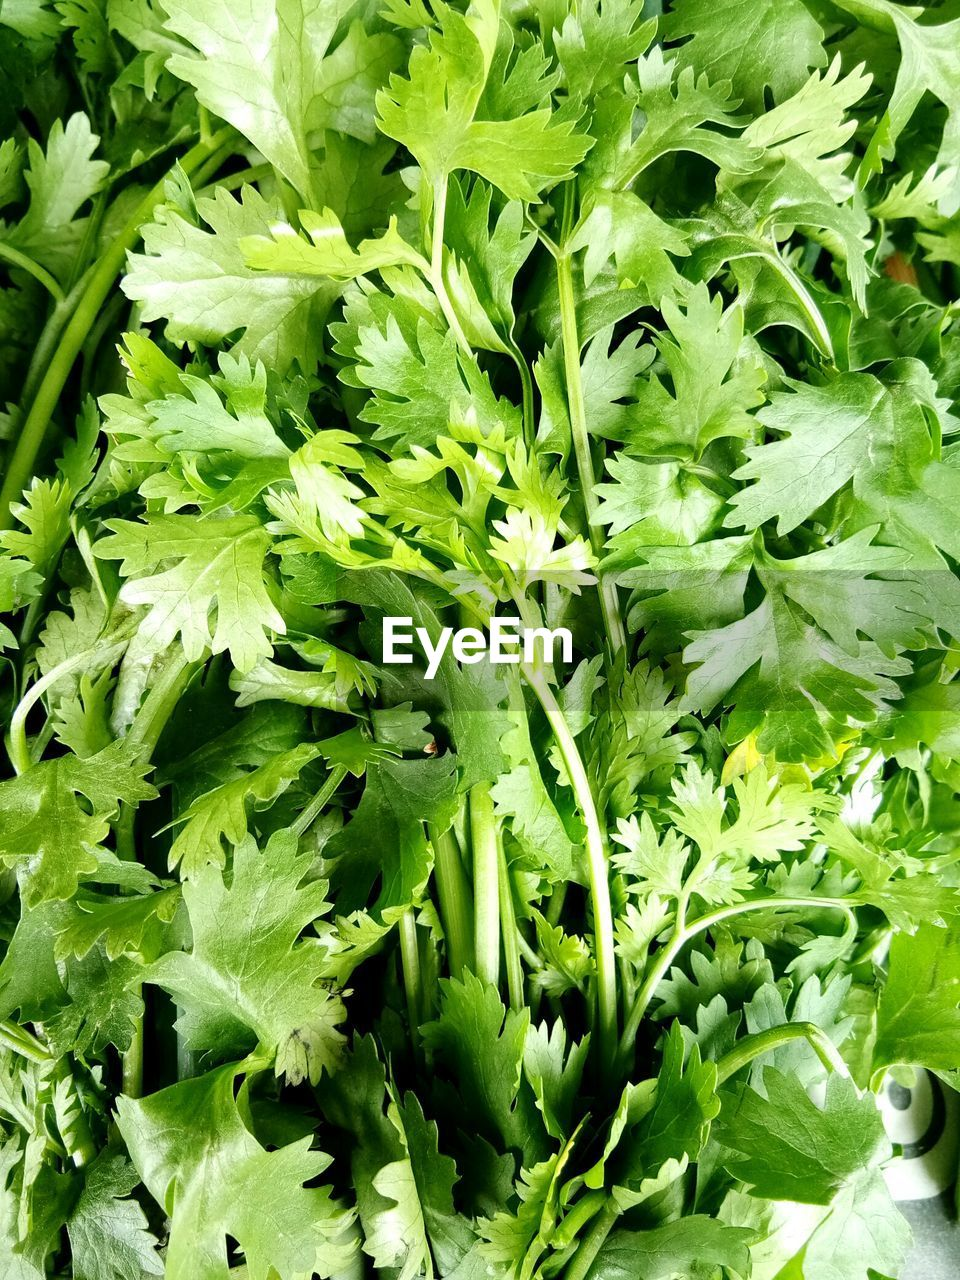 green color, food and drink, freshness, wellbeing, food, vegetable, healthy eating, leaf, plant part, no people, full frame, close-up, backgrounds, plant, raw food, nature, high angle view, day, growth, lettuce, herb, leaves, vegetarian food